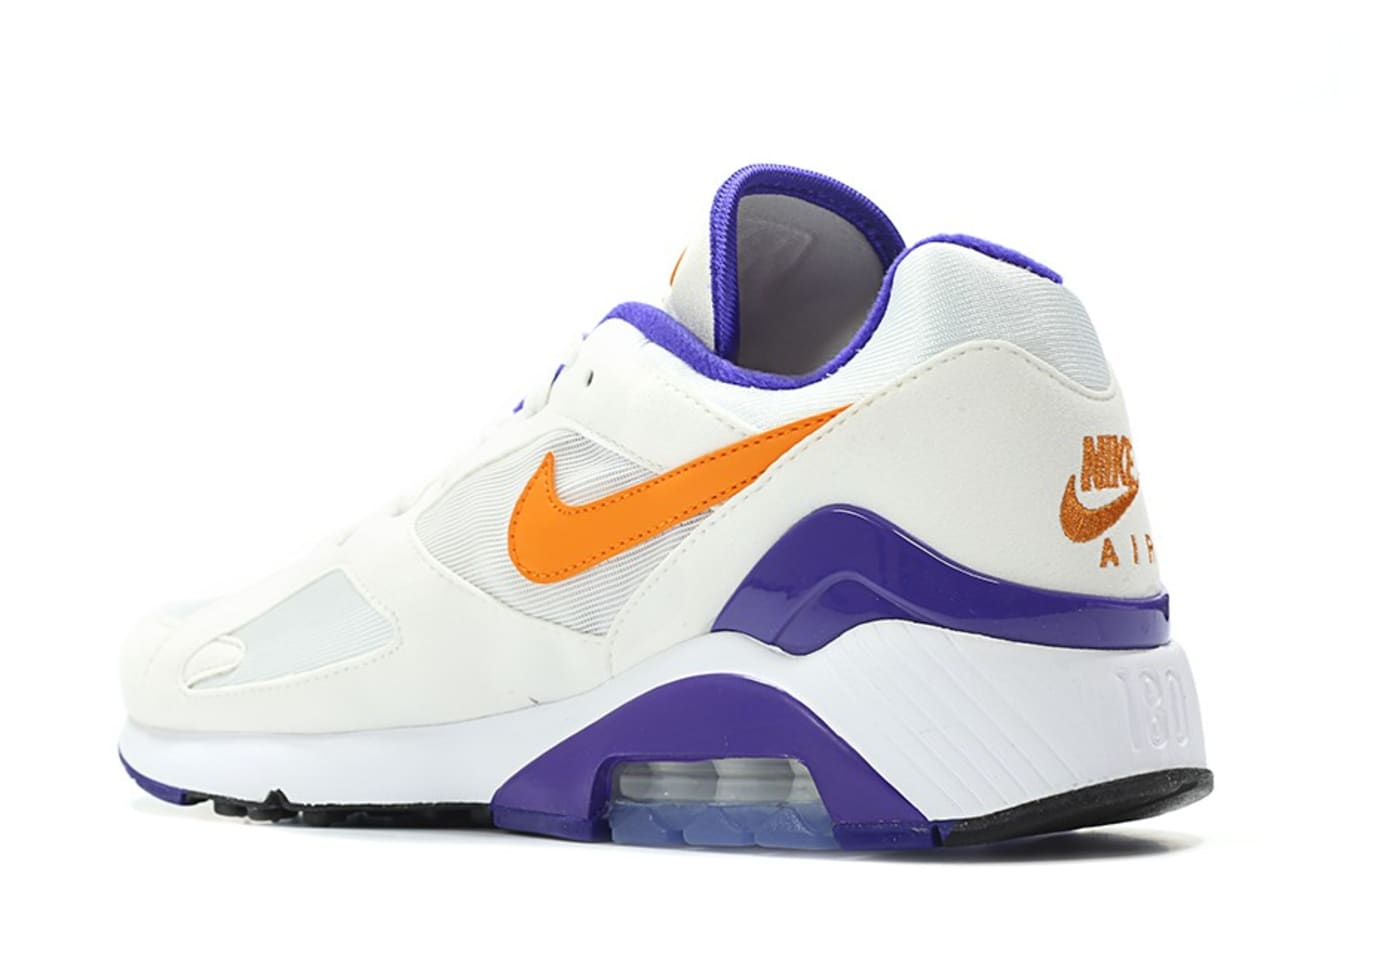 check out 91116 a00f6 ... Nike Air Max 180 OG WhiteBright Ceramic-Dark Concord 615287-101 (